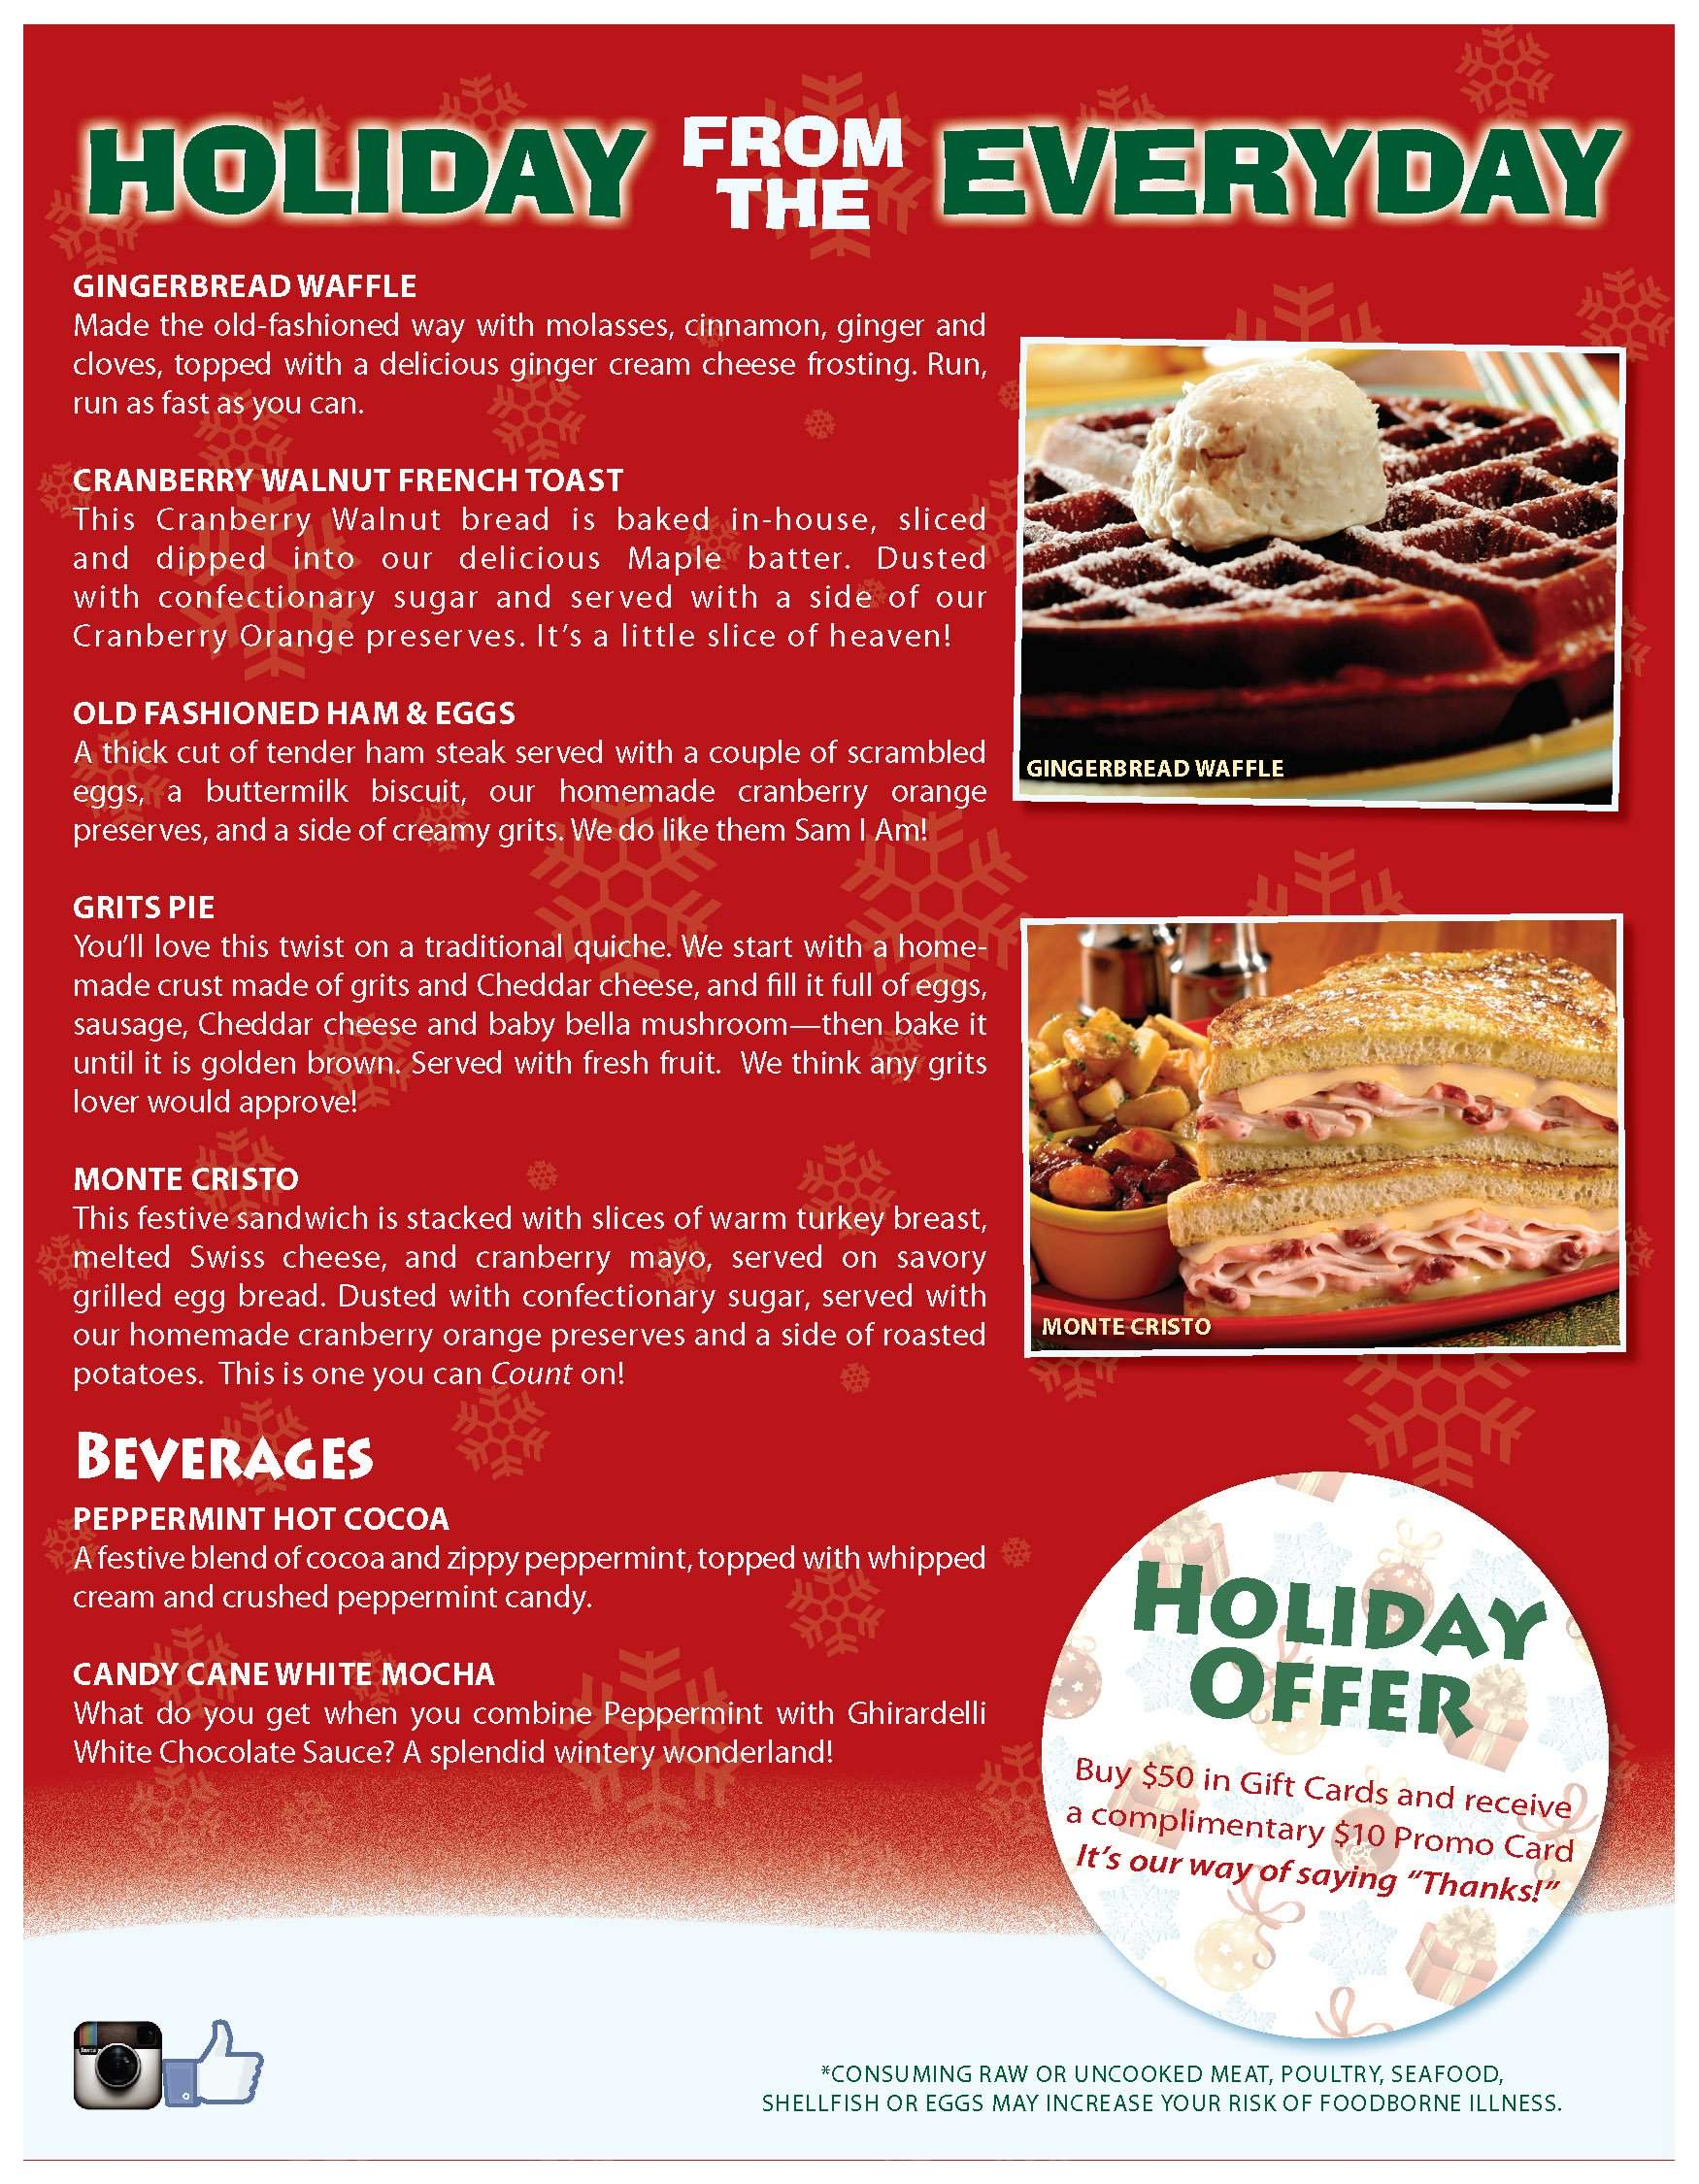 Holiday from the Everyday at J. Christopher's